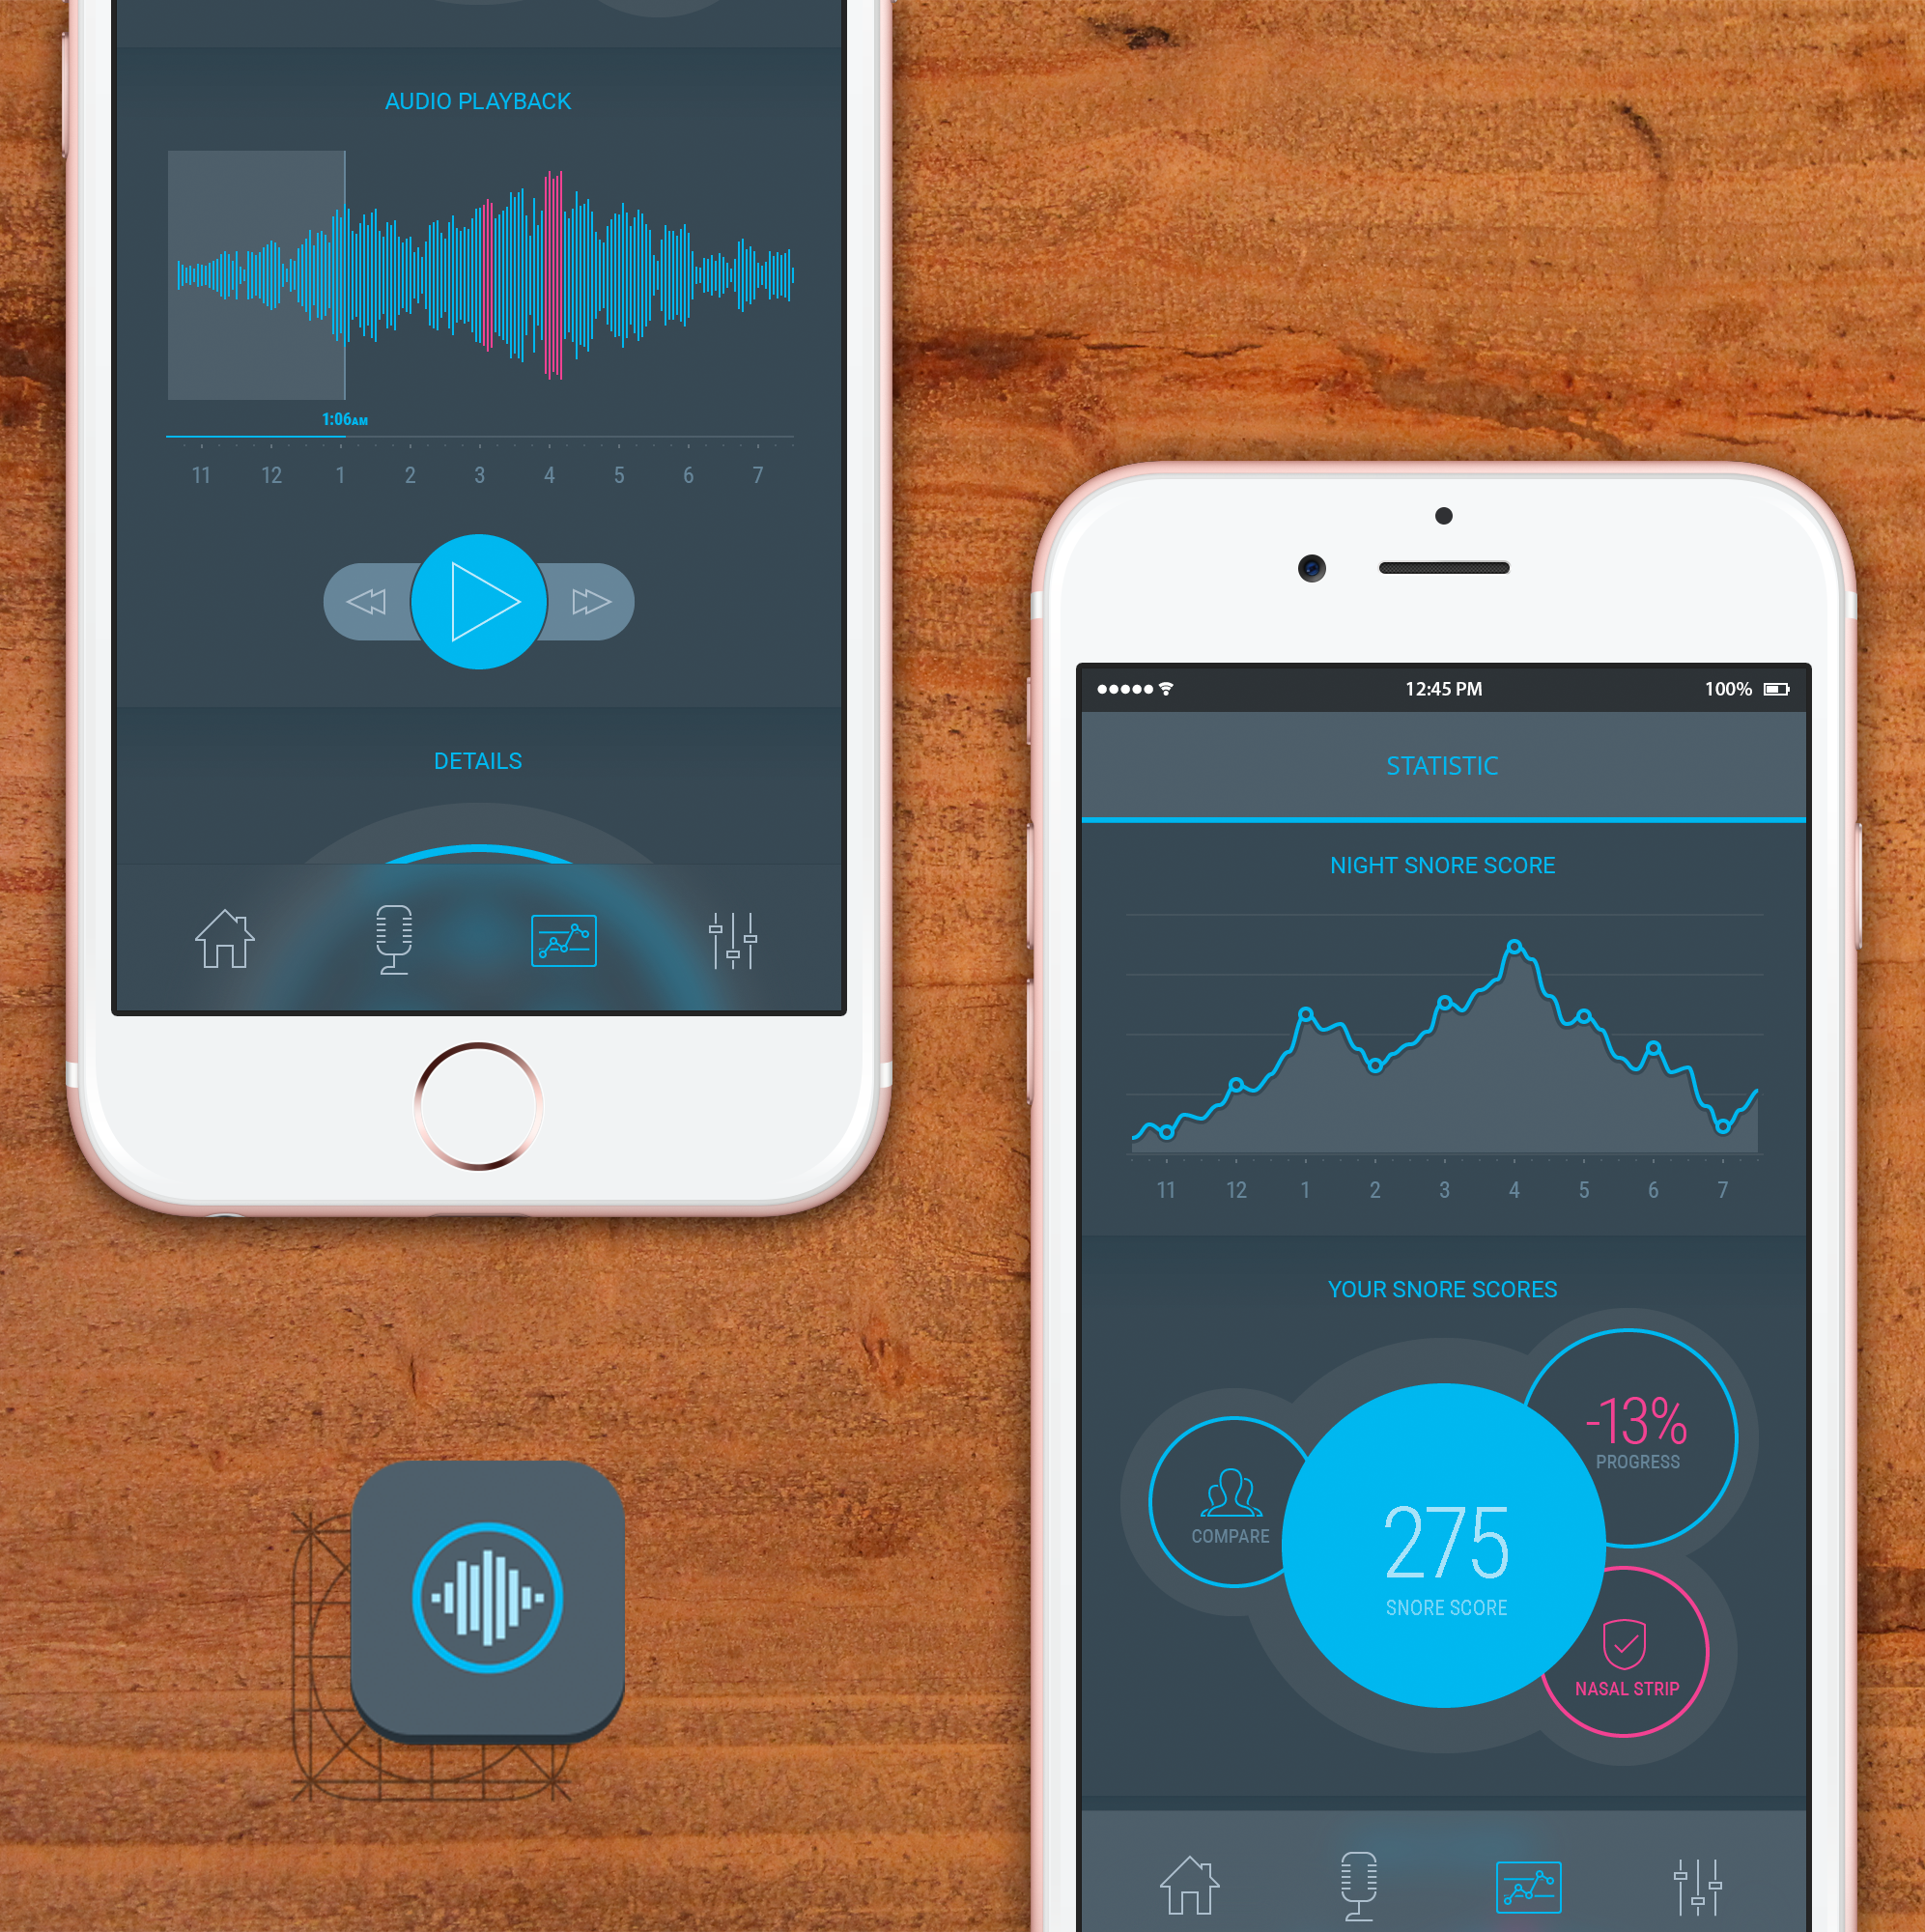 Snore tracking mobile application